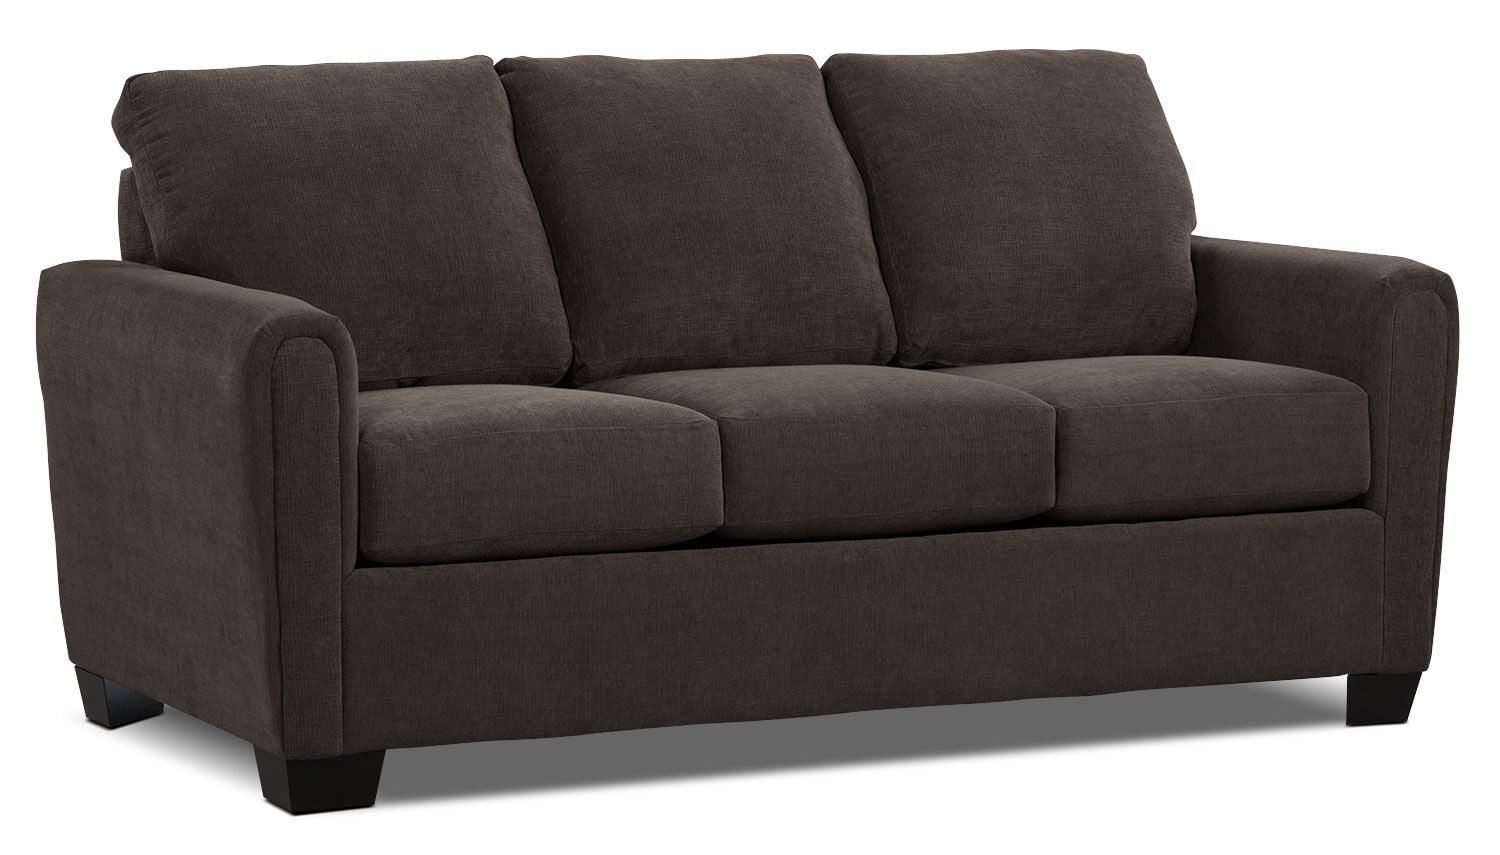 Spa Collection Chenille Full-Size Sofa Bed